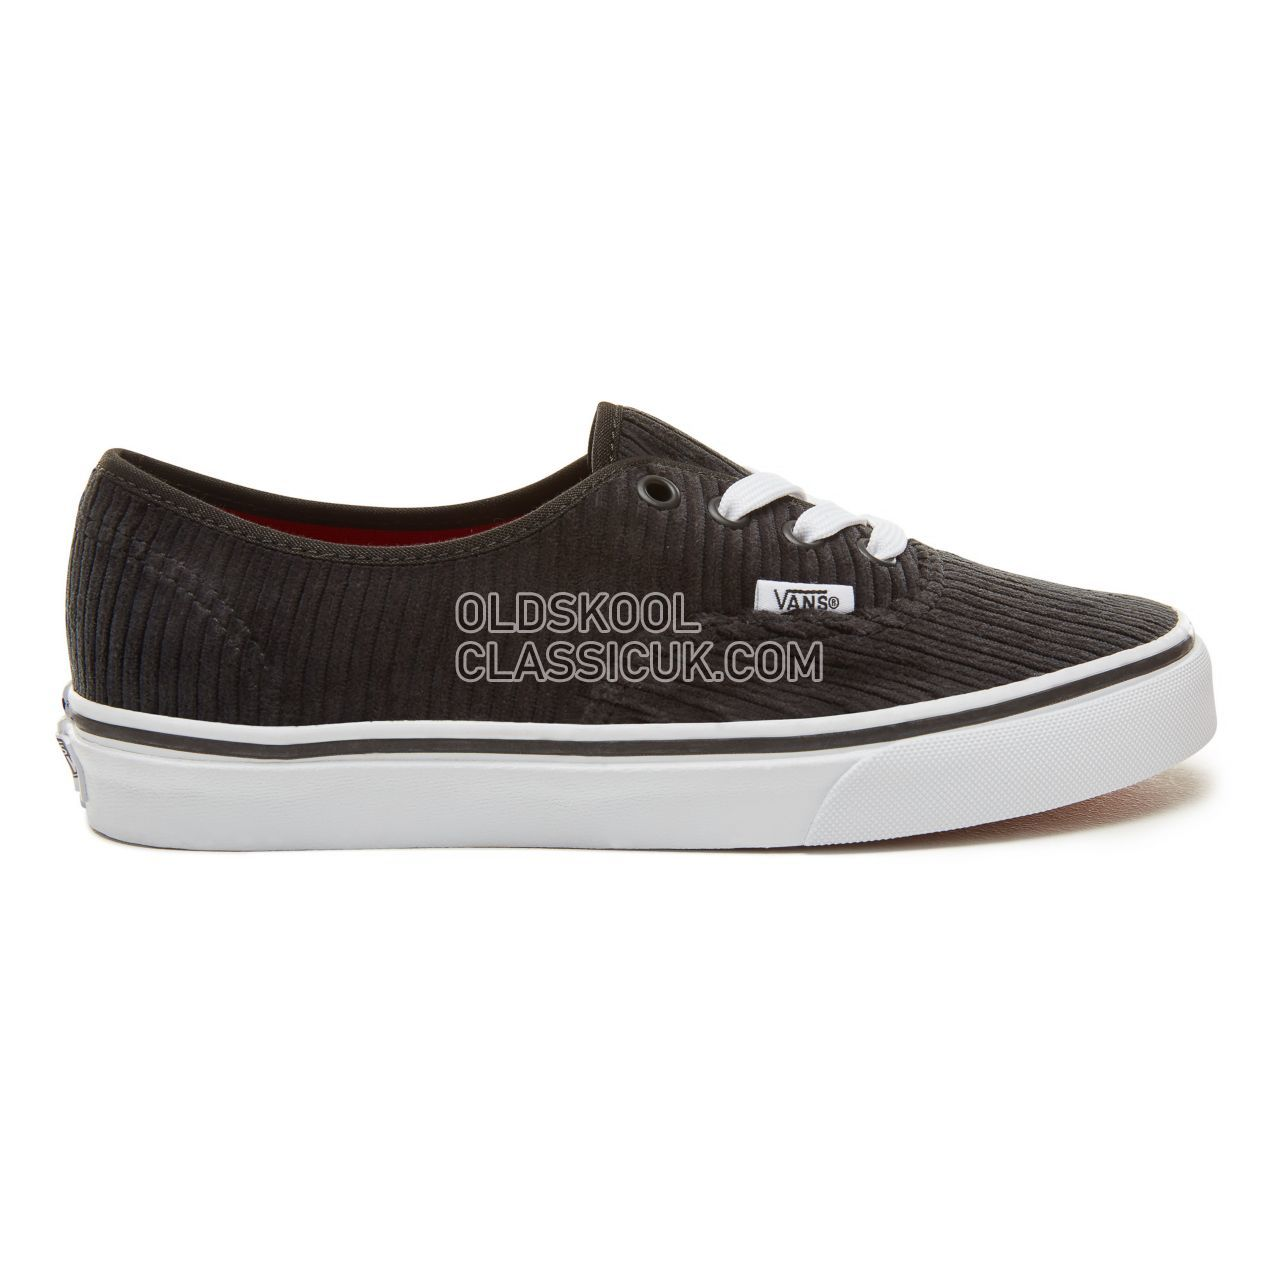 Vans Design Assembly Corduroy Authentic Sneakers Womens (Design Assembly) Black/True White VA38EMU55 Shoes